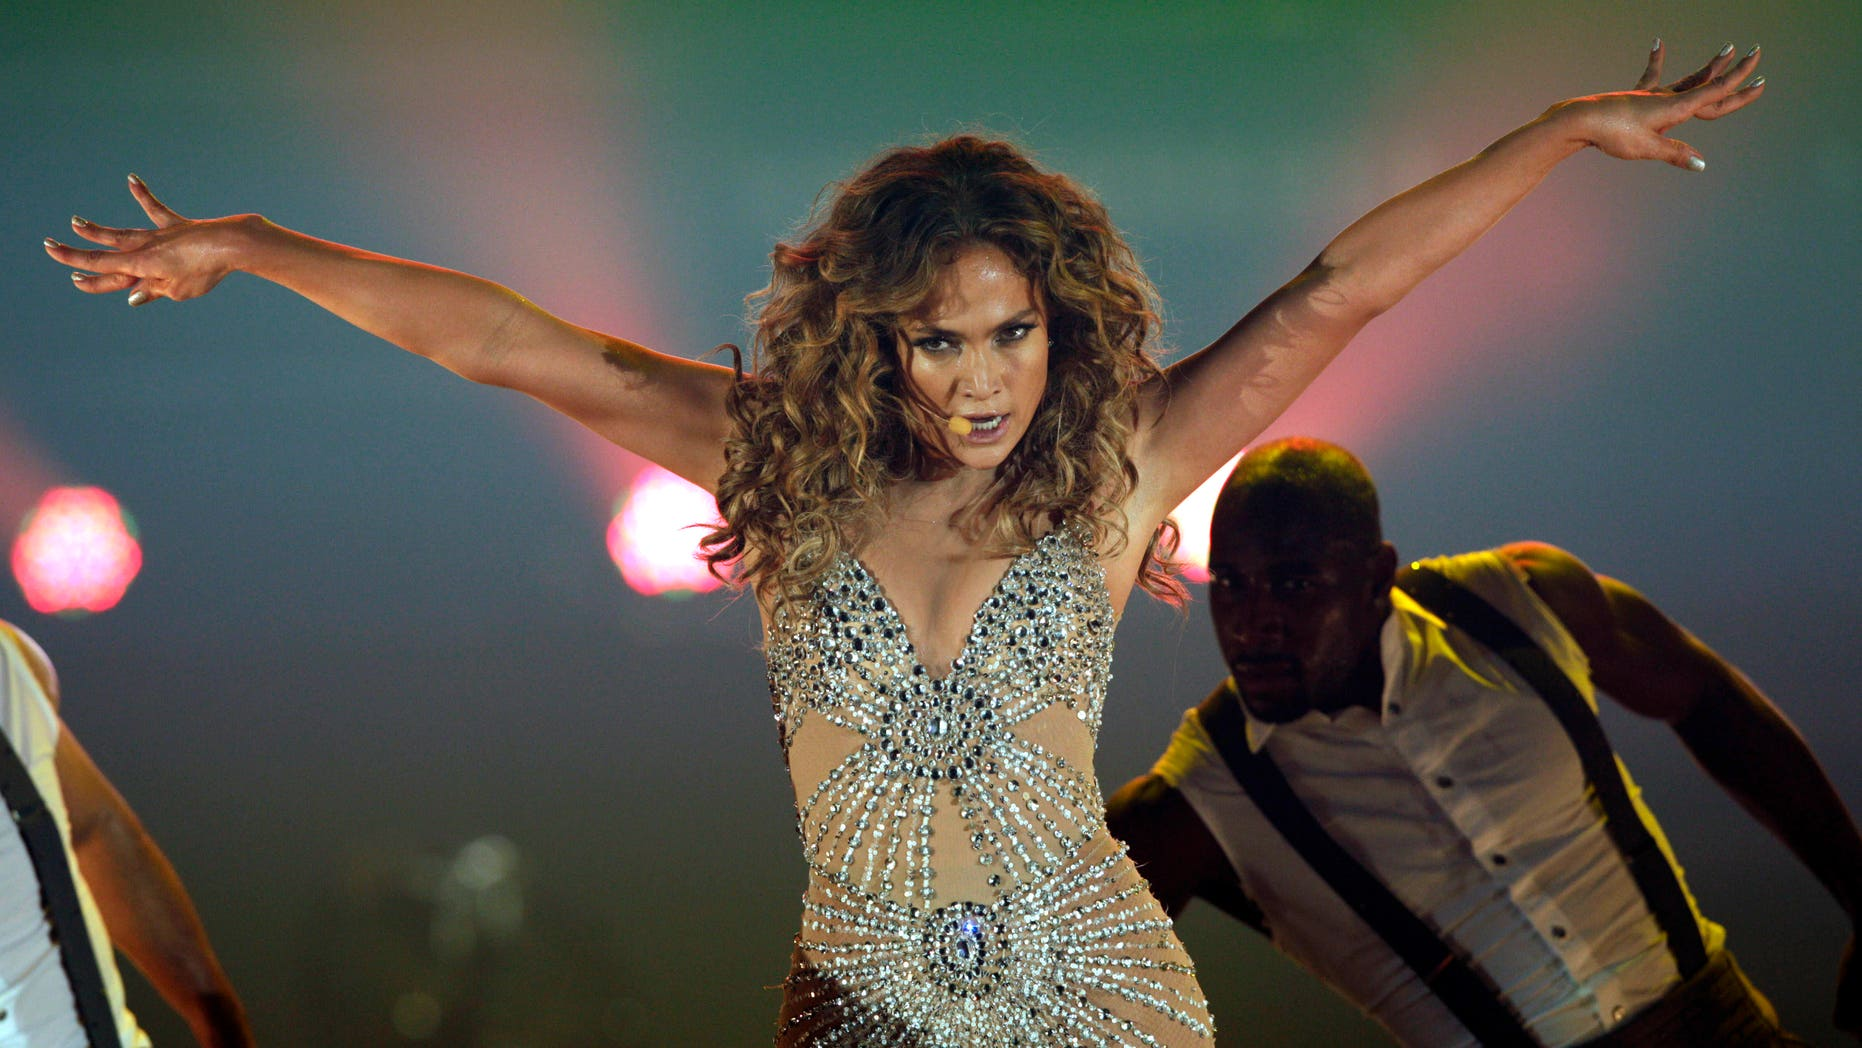 """June 14, 2012: Jennifer Lopez performs during a concert, part of her """"Dance Again Tour"""" in Panama City."""